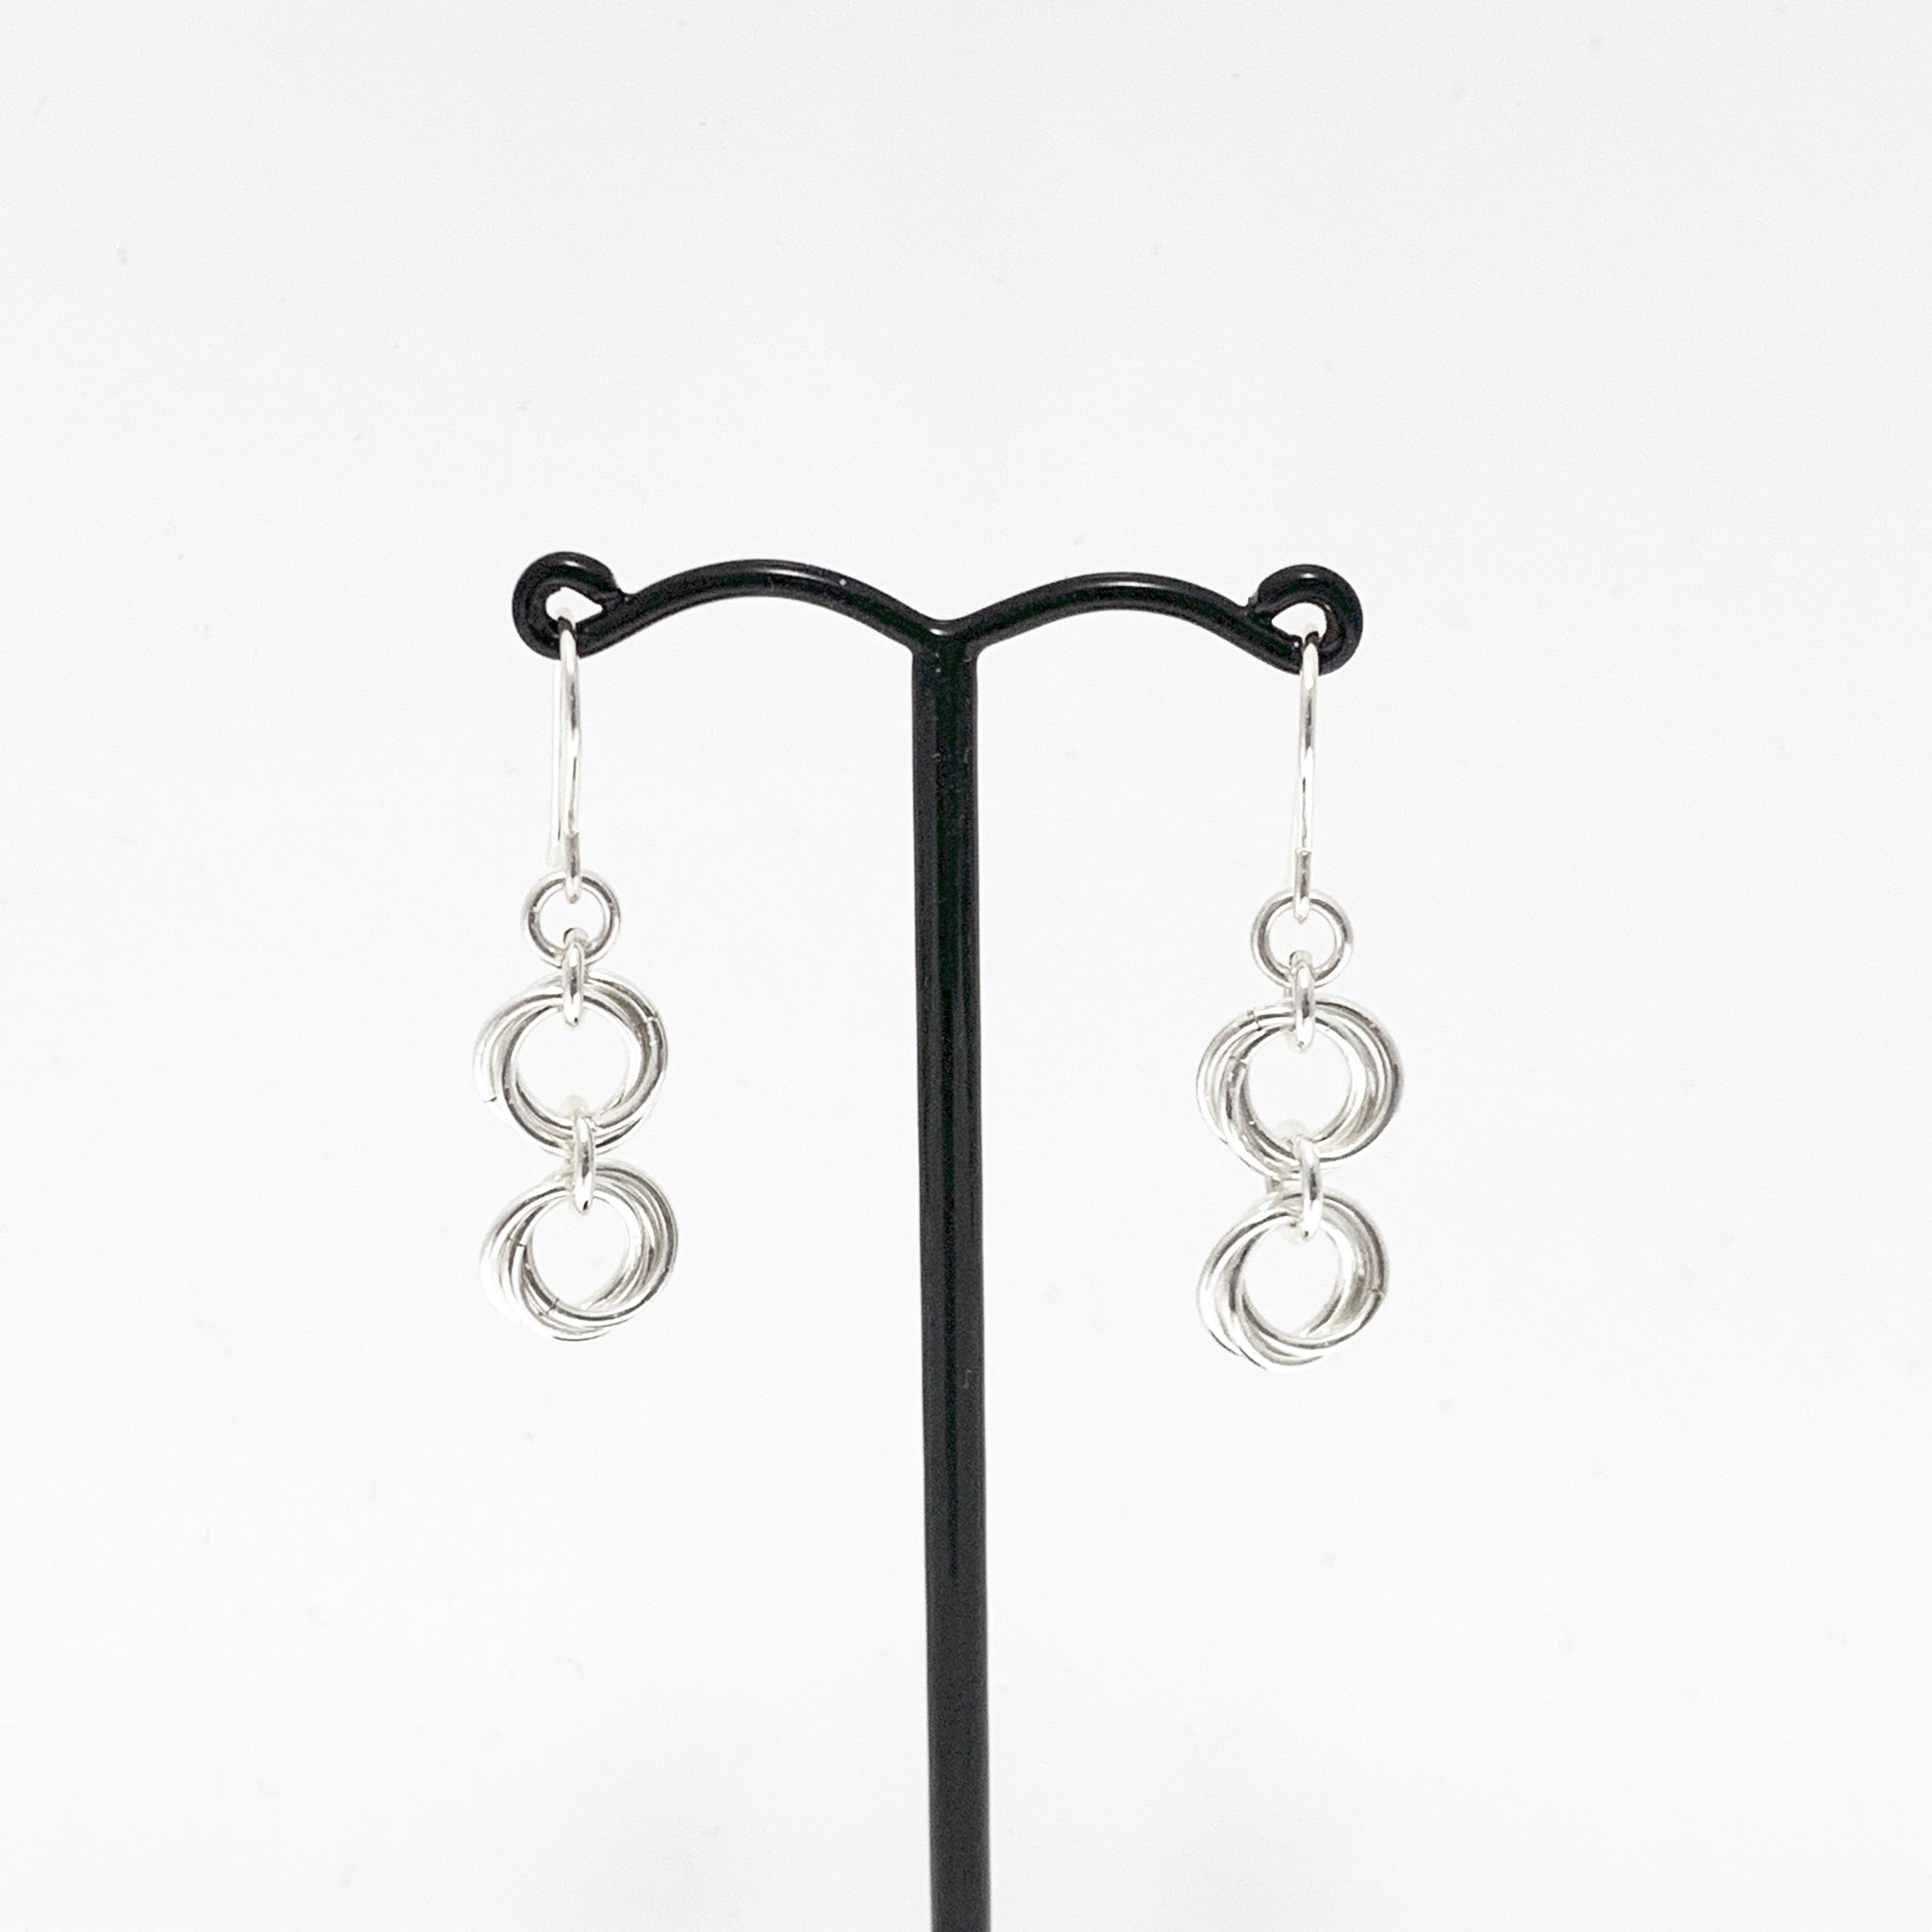 Mobius 62 earrings